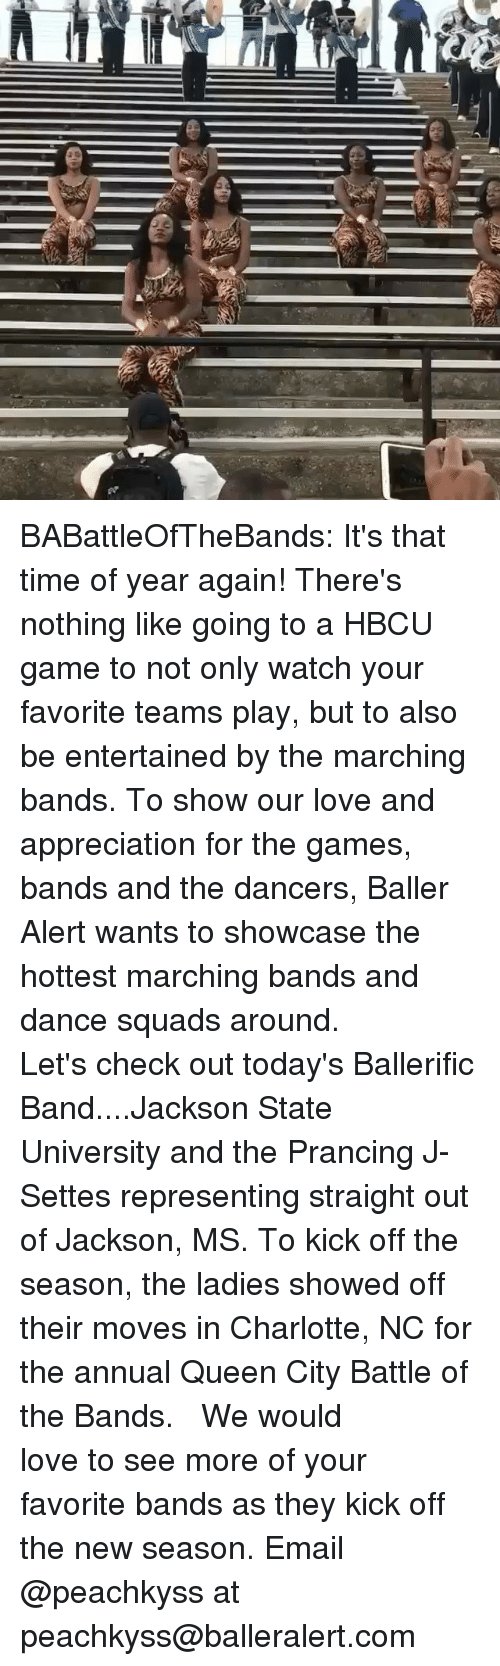 Baller Alert, Love, and Memes: BABattleOfTheBands: It's that time of year again! There's nothing like going to a HBCU game to not only watch your favorite teams play, but to also be entertained by the marching bands. To show our love and appreciation for the games, bands and the dancers, Baller Alert wants to showcase the hottest marching bands and dance squads around. ⠀⠀⠀ ⠀⠀⠀⠀⠀⠀⠀ Let's check out today's Ballerific Band....Jackson State University and the Prancing J-Settes representing straight out of Jackson, MS. To kick off the season, the ladies showed off their moves in Charlotte, NC for the annual Queen City Battle of the Bands. ⠀⠀⠀⠀⠀⠀⠀ ⠀⠀⠀⠀⠀⠀⠀ We would love to see more of your favorite bands as they kick off the new season. Email @peachkyss at peachkyss@balleralert.com